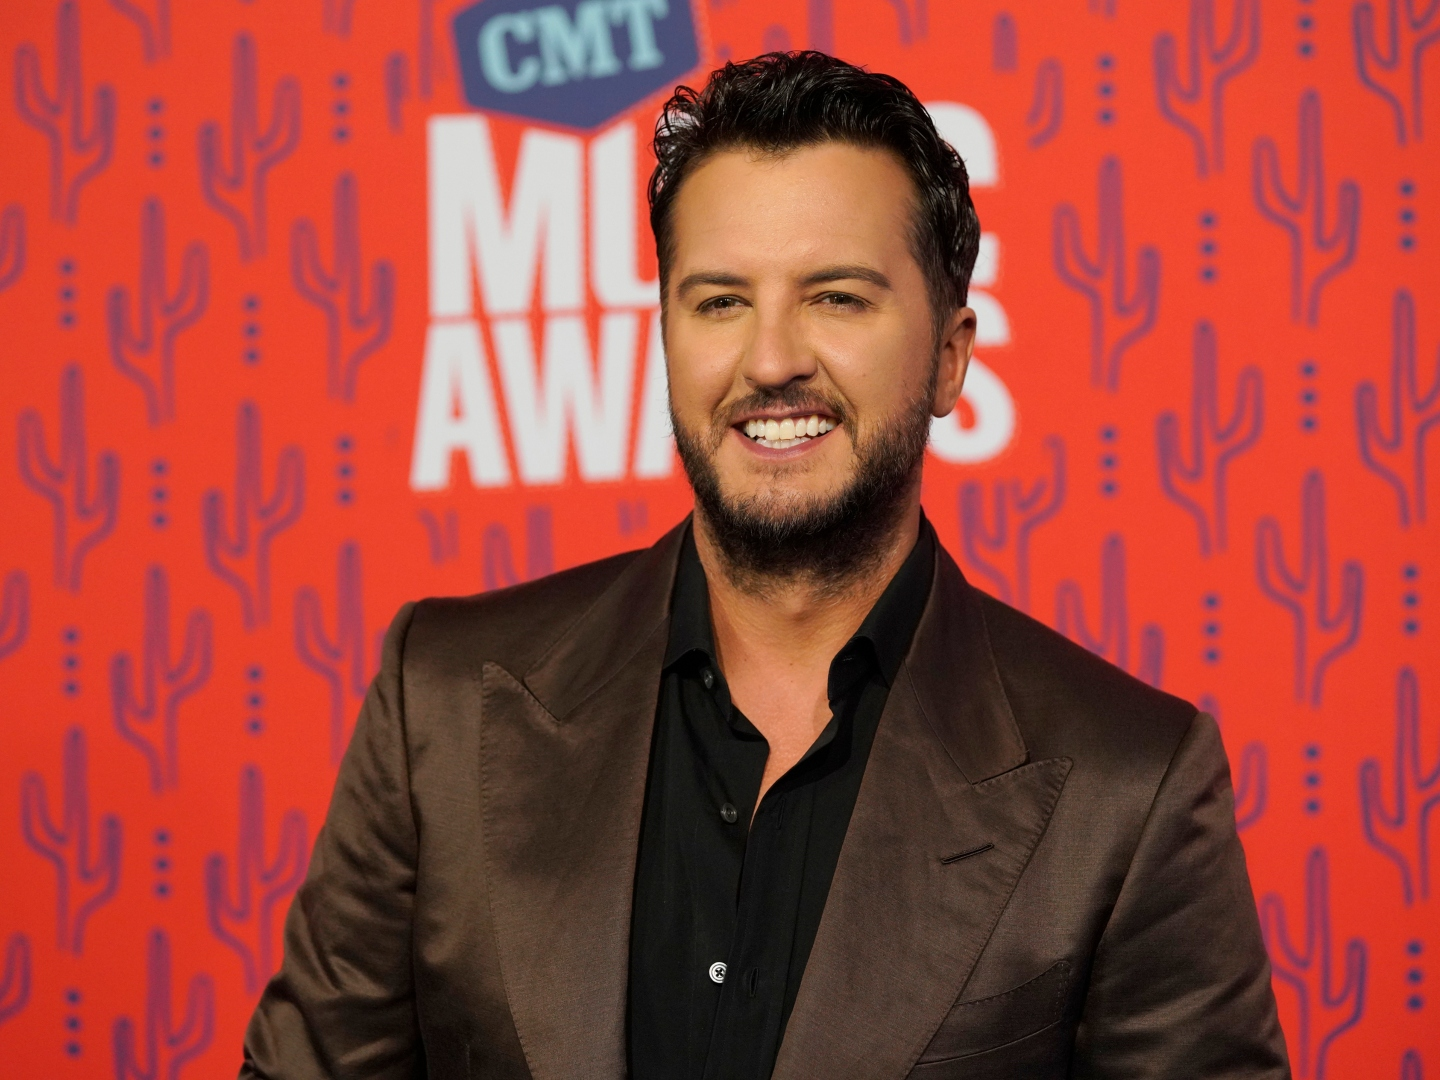 Luke Bryan Calls Out His Moms Dance Moves in One Margarita Music Video at CMT Awards